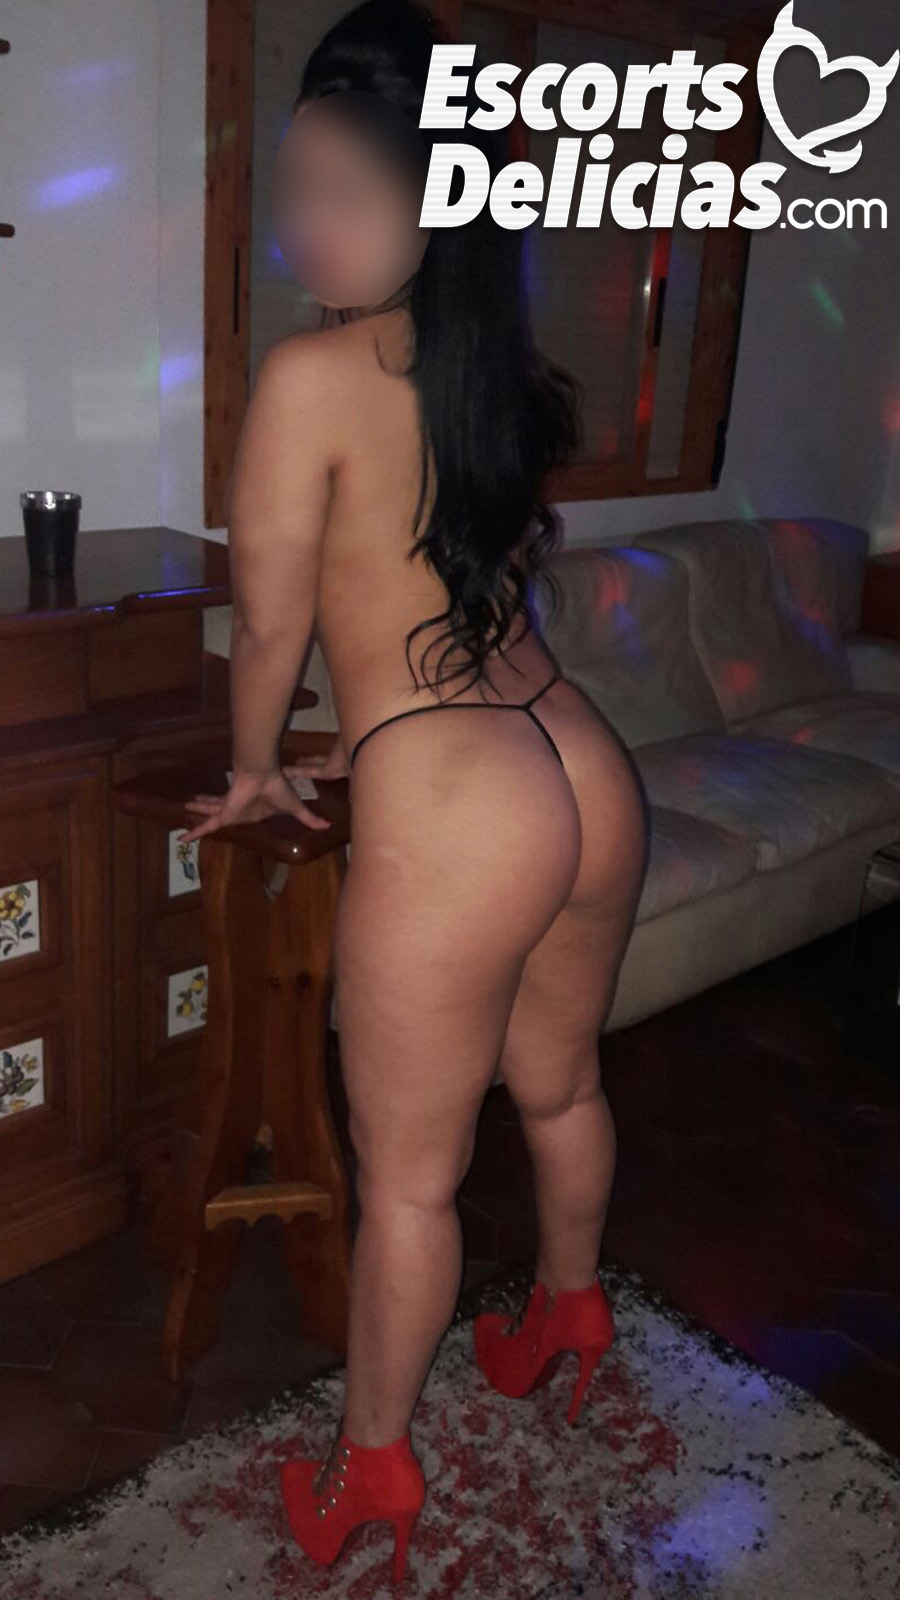 paginas de escorts independientes venezolanas perras